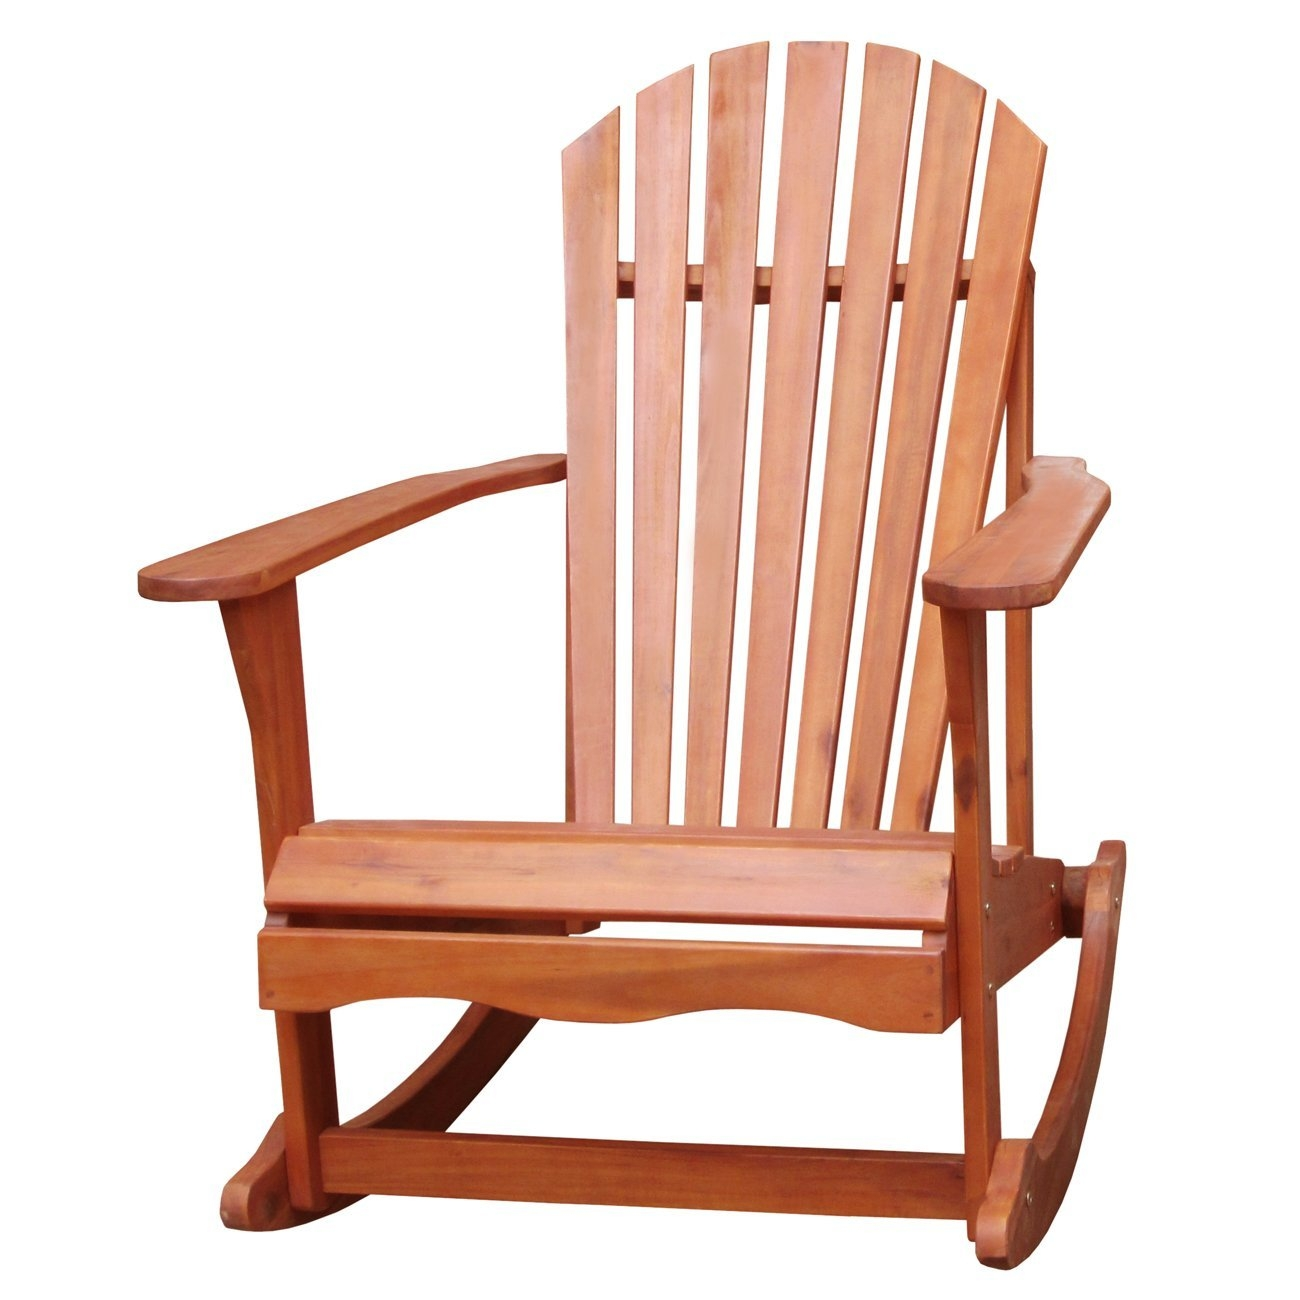 Solid Wood Adirondack Style Porch Rocker Rocking Chair,  ICAPCR169 :  Your home is a natural extension of you. Add this Solid Wood Adirondack Style Porch Rocker Rocking Chair to spruce up any décor. It is made from solid wood and has an oiled finish. RTA construction.